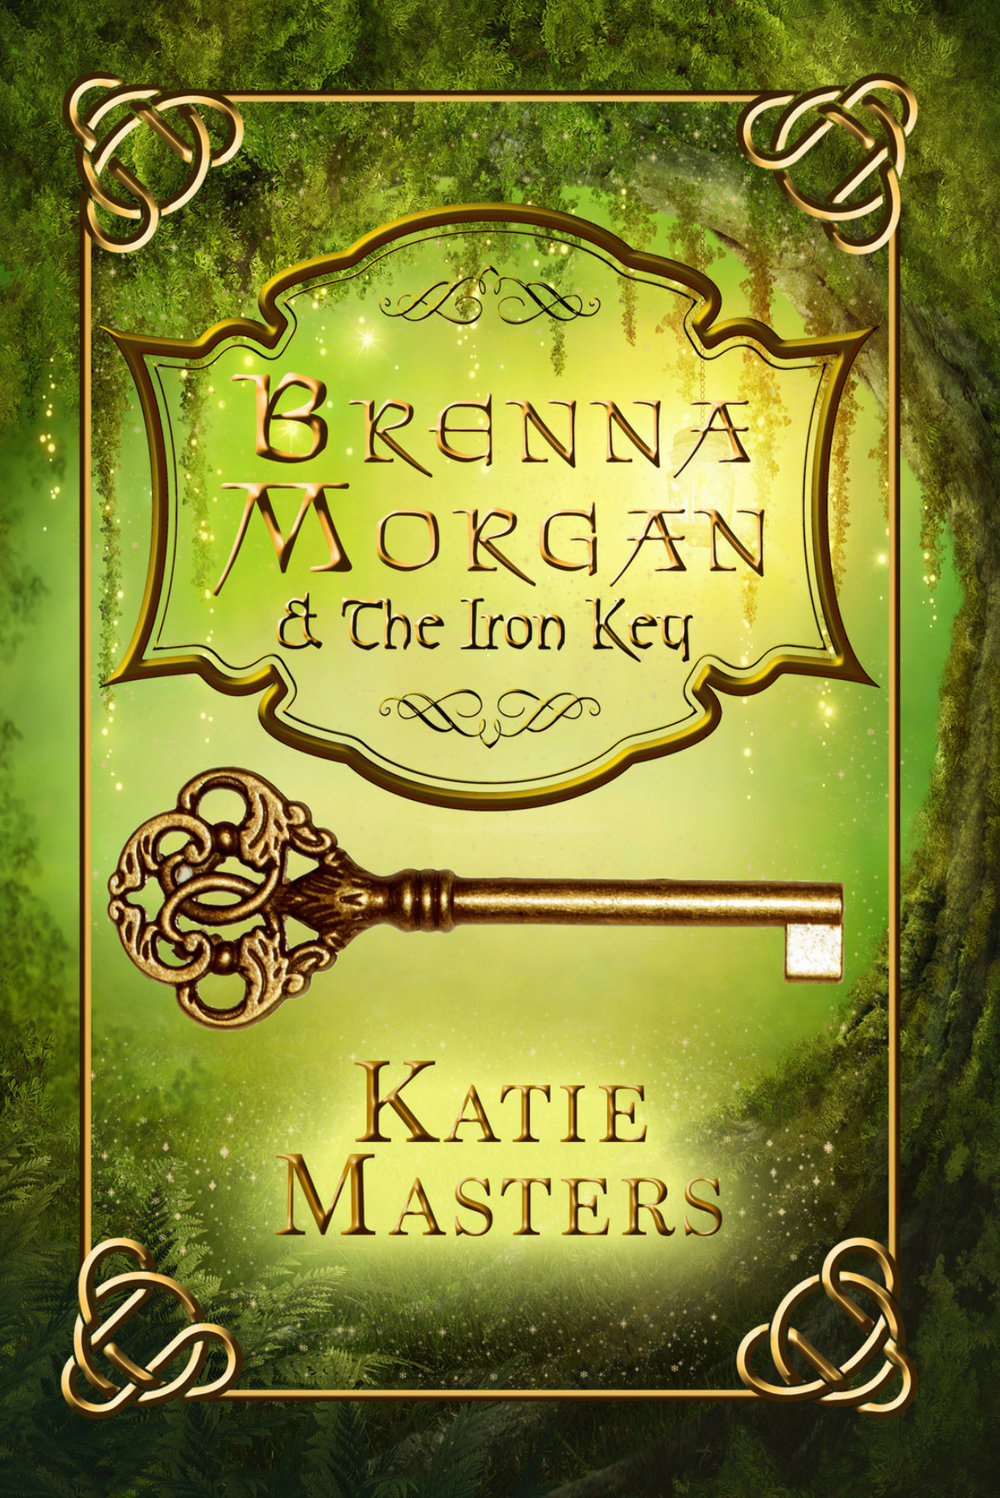 Brenna Morgan & The Iron Key   By: Katie Masters  Twitter:  https://twitter.com/Katie_Masters29